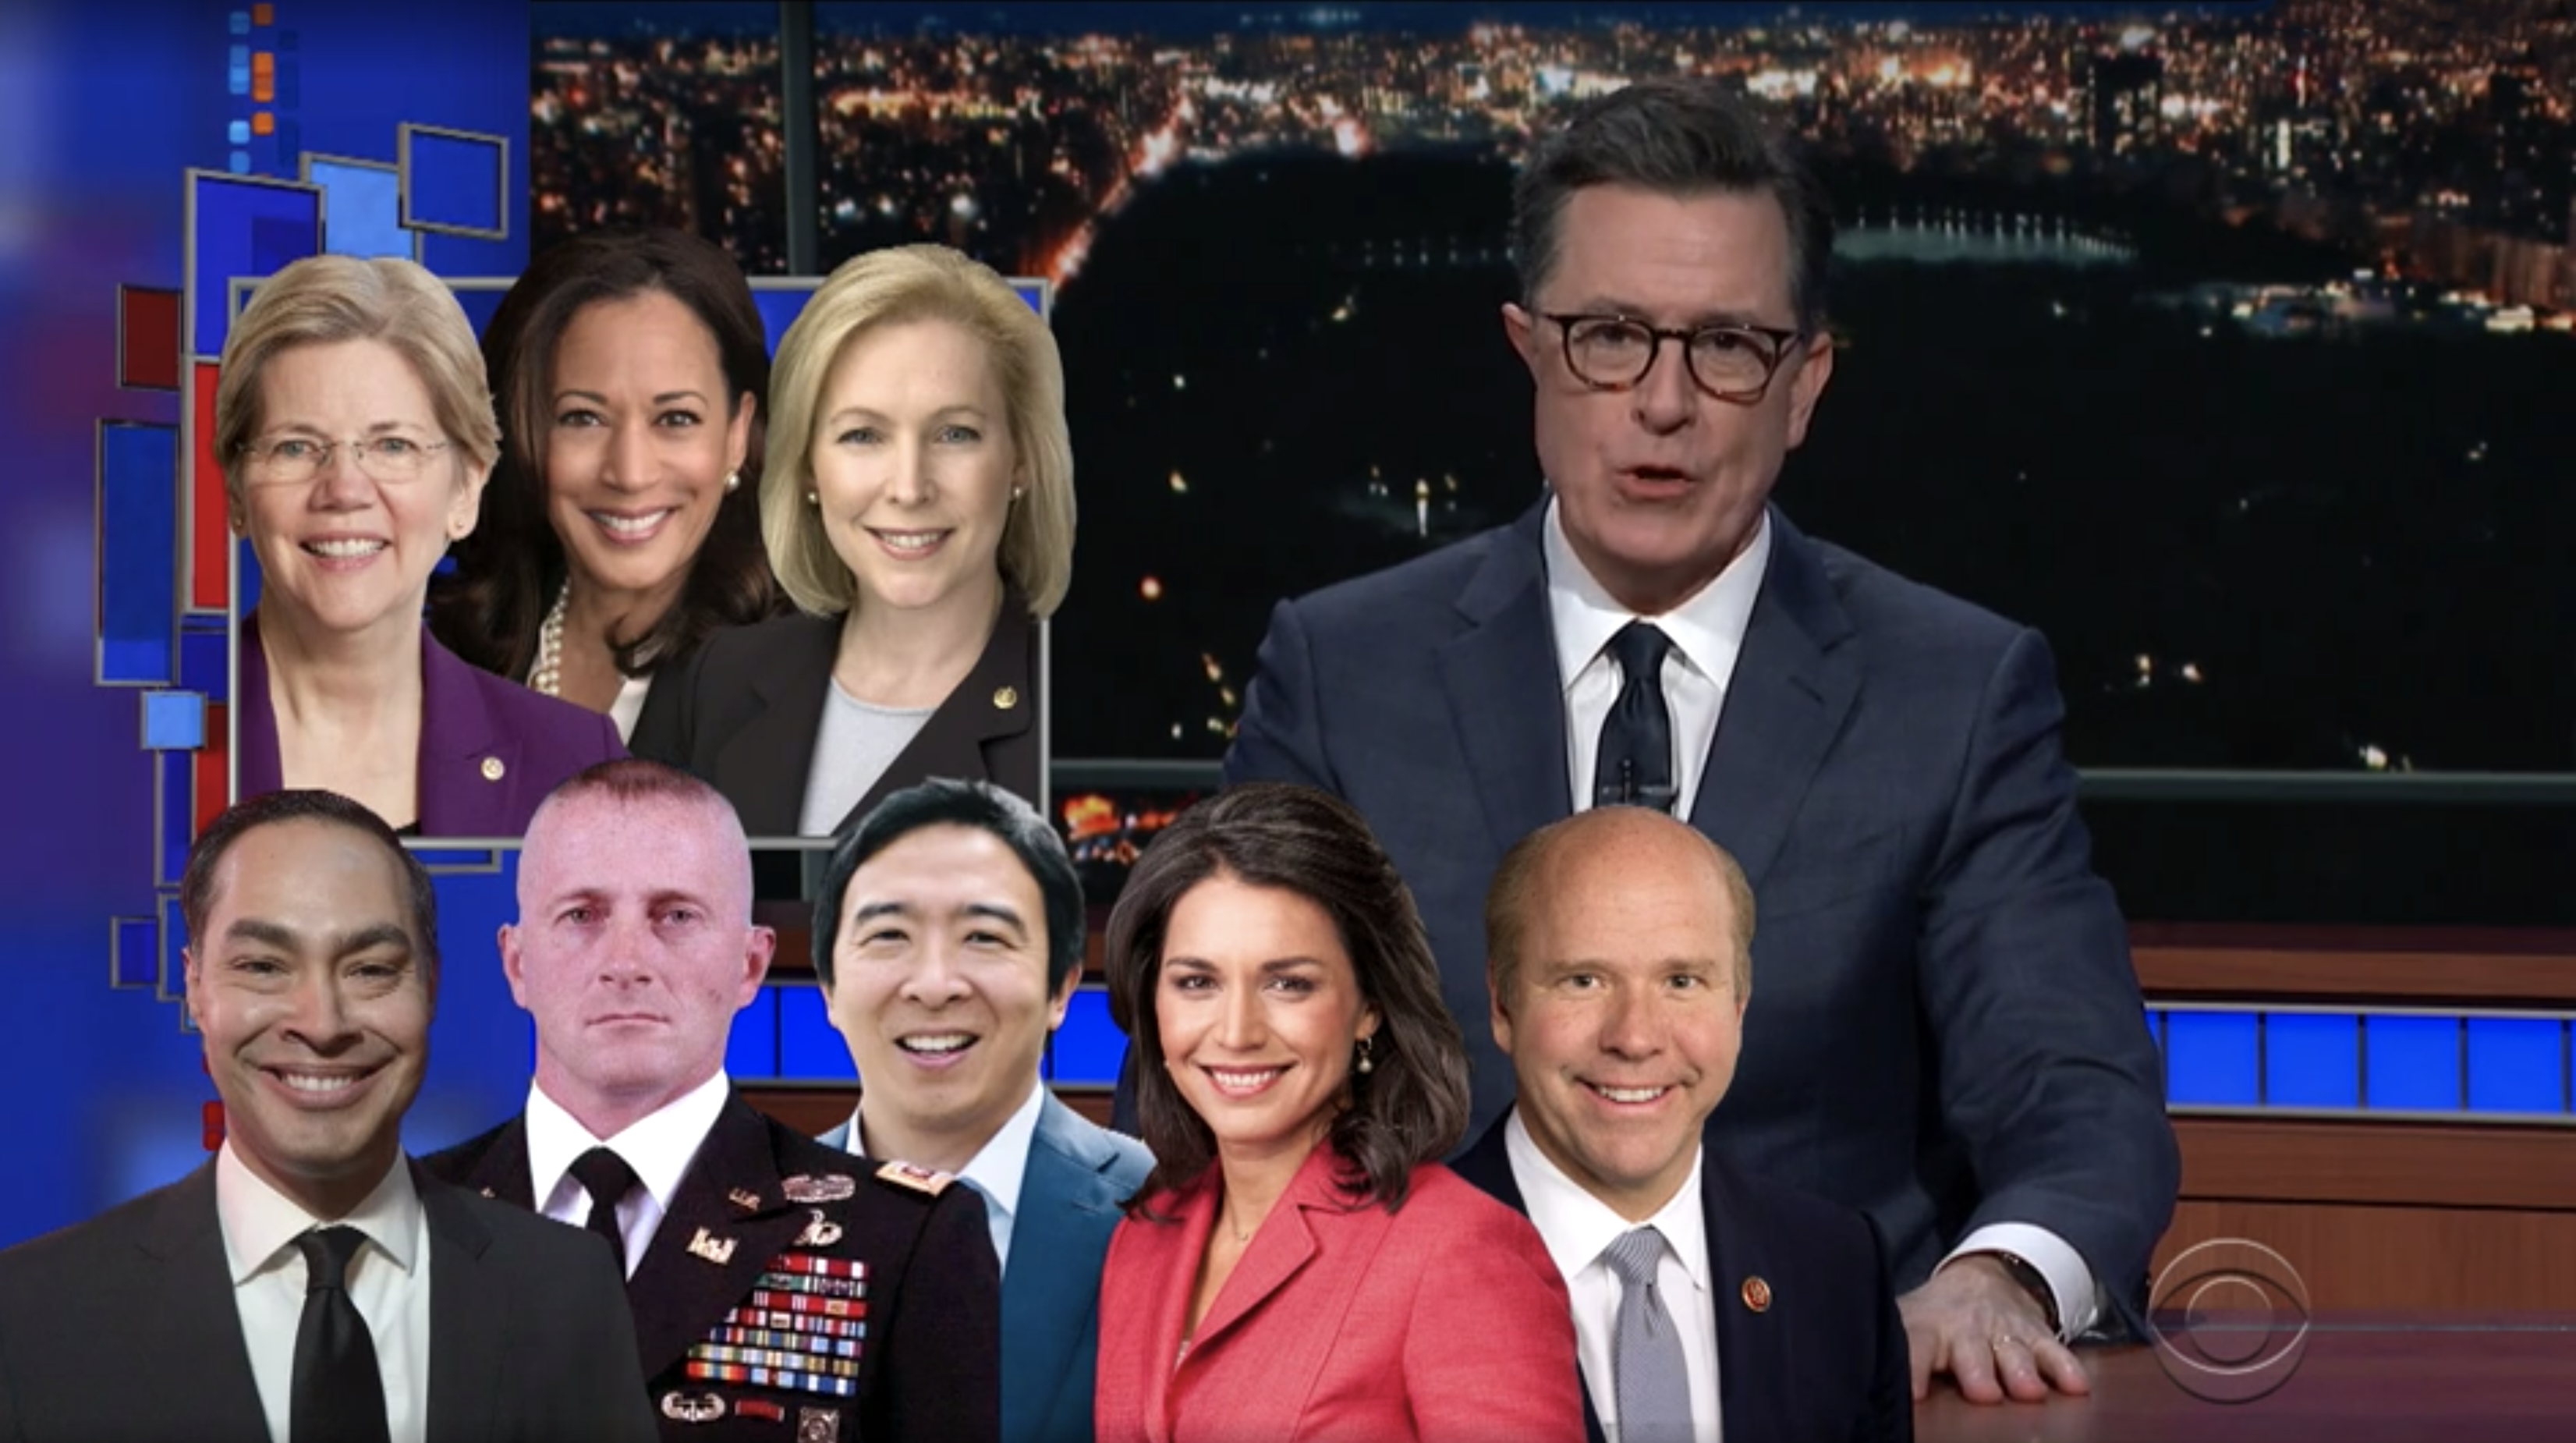 Stephen Colbert discusses the 2020 Presidential field, with headshots of each candidate on screen